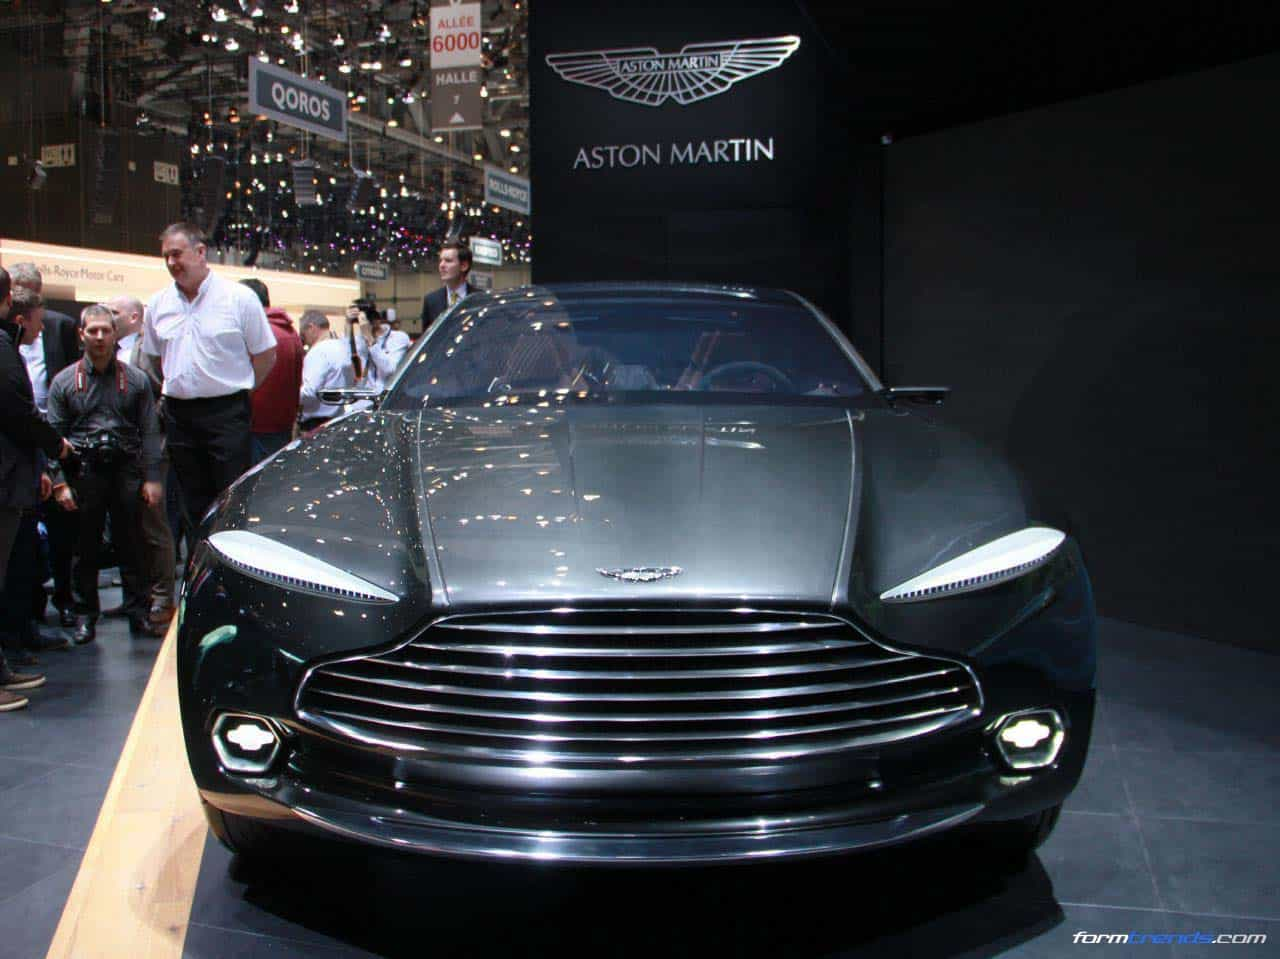 Aston Martin Dbx Concept Blending Suv Attributes With Gt Luxury